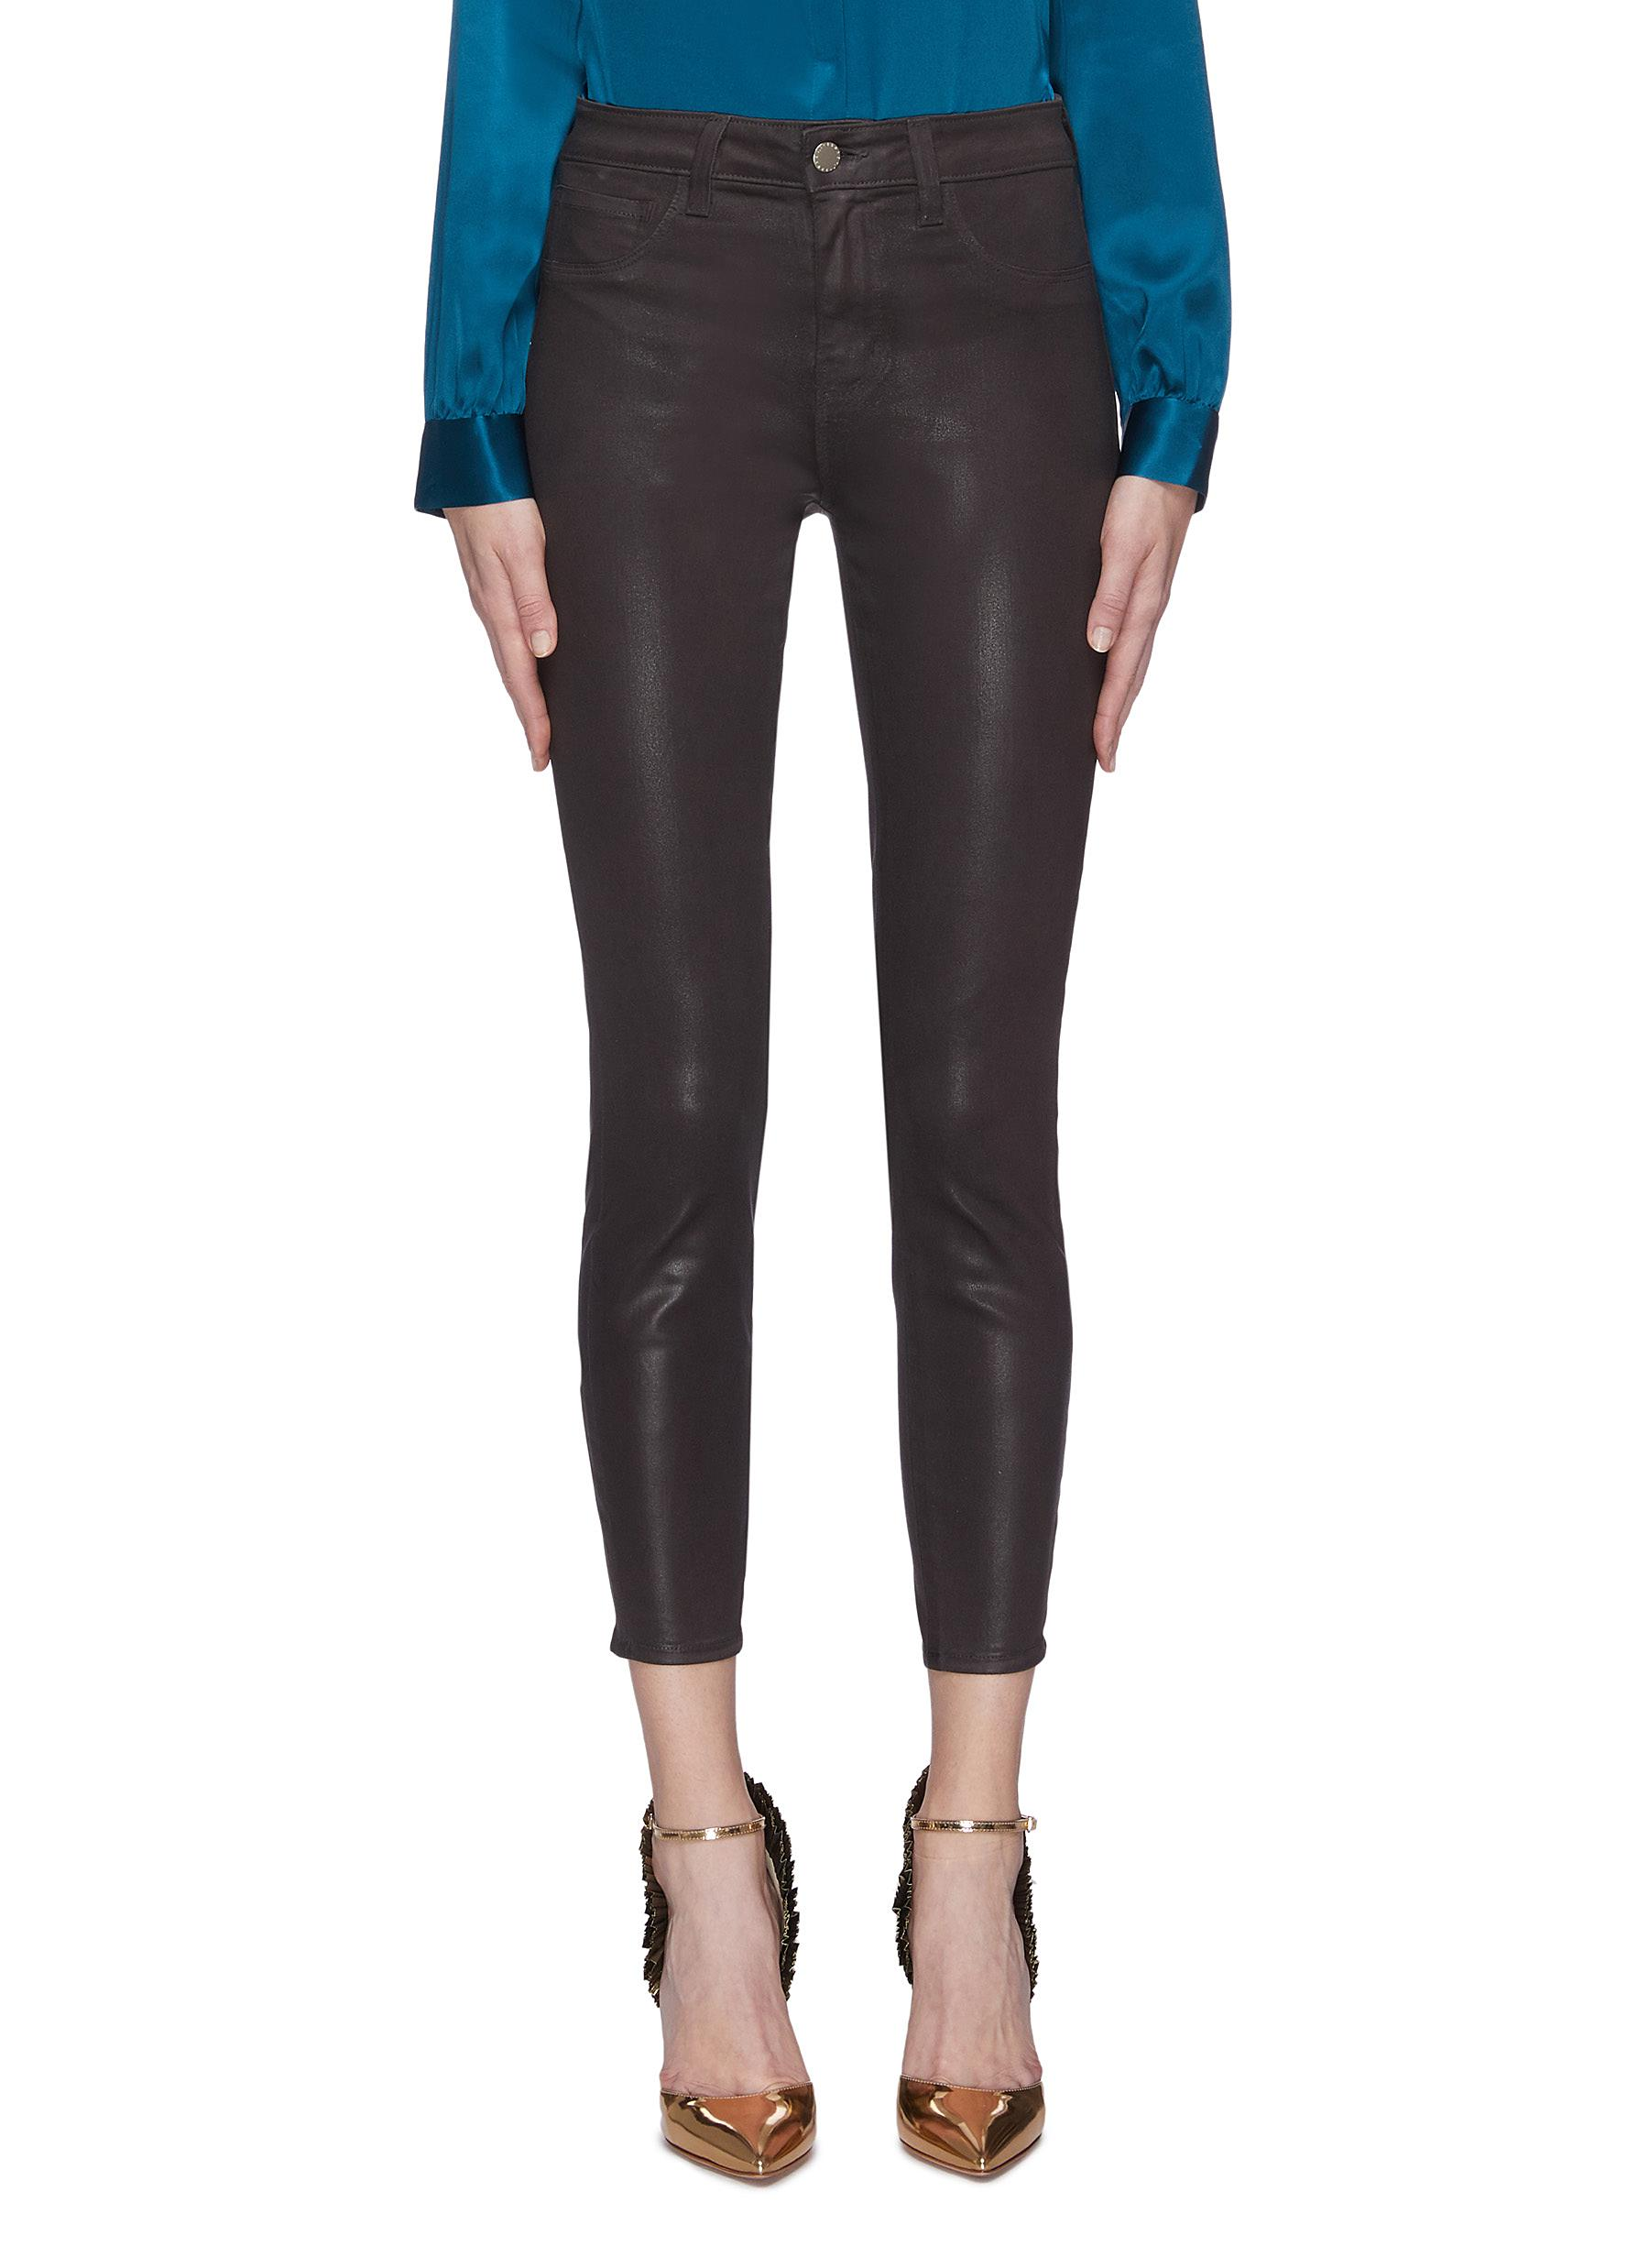 Buy L'Agence Jeans 'Margot' coated cropped skinny jeans